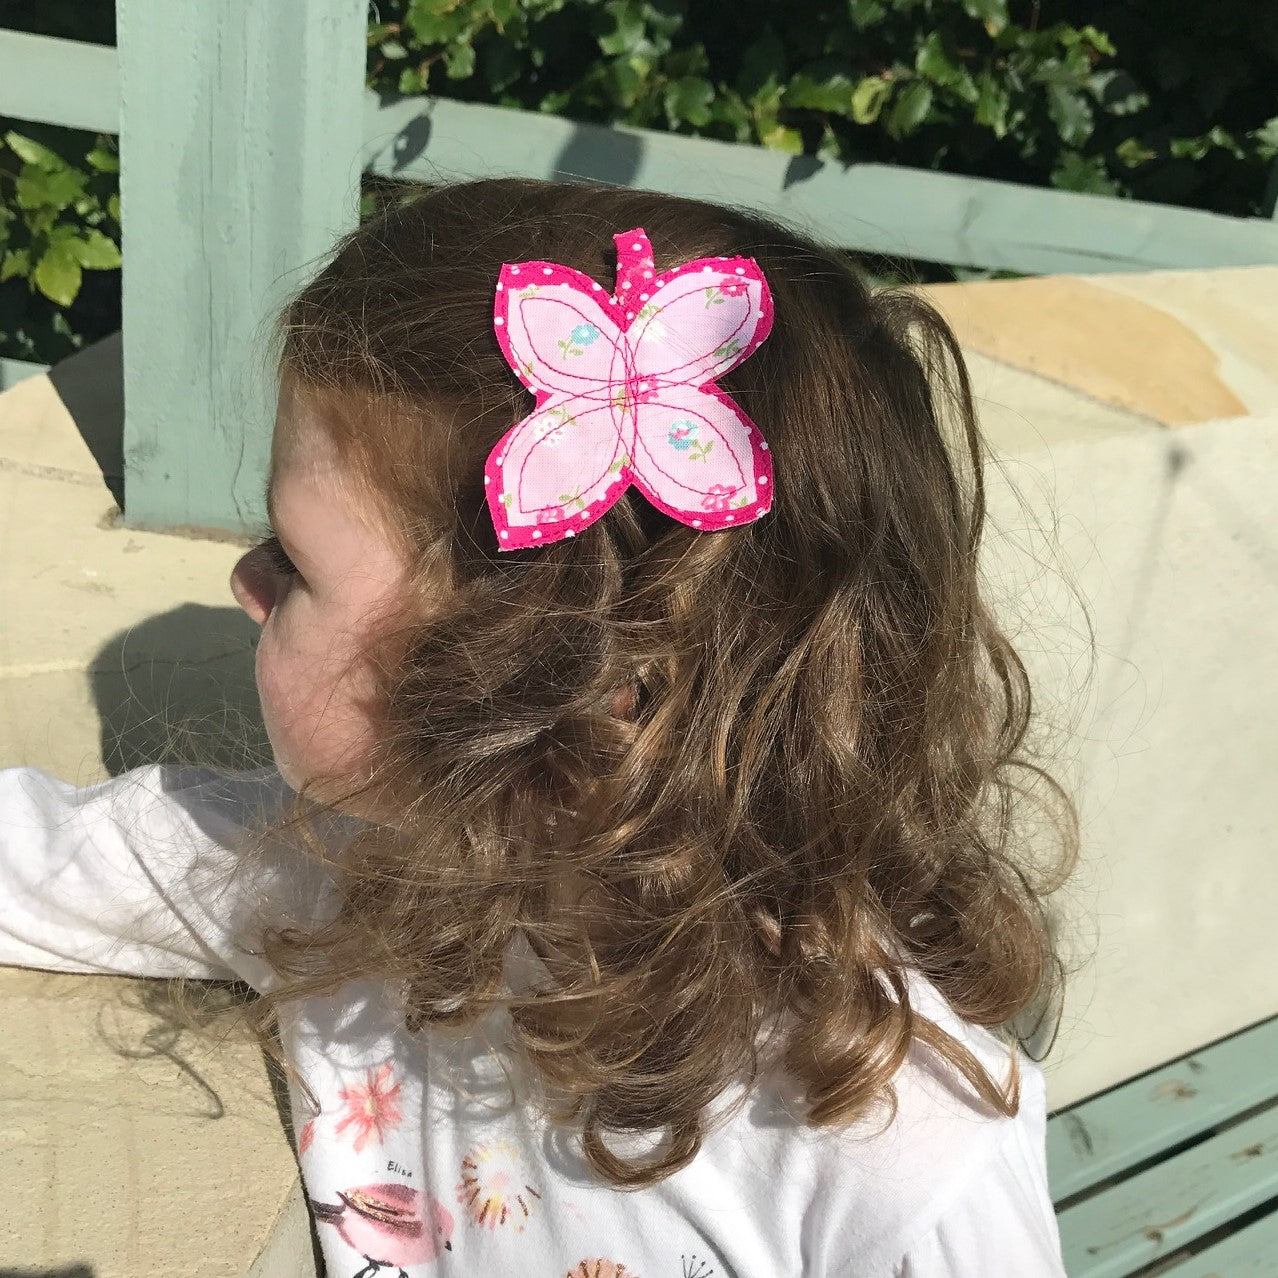 These beautiful fuchsia butterfly hair clips are finished with 100% cotton fabric, decorated with a hand sewed little flower. These hair clips are perfect for girls of all ages!